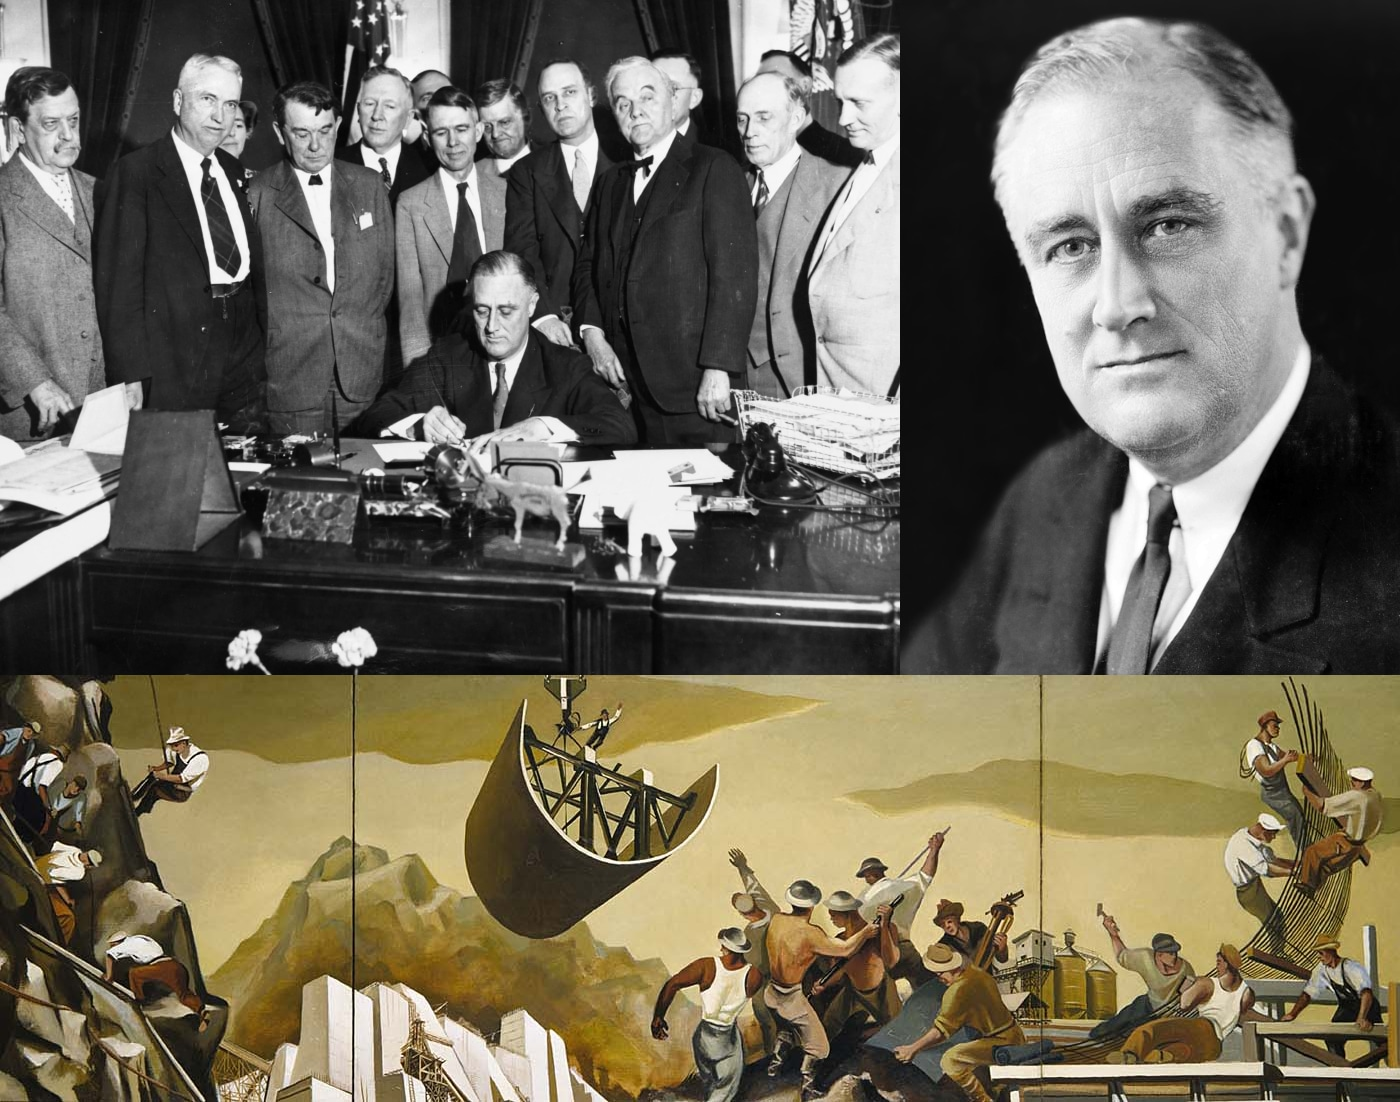 Top left: The Tennessee Valley Authority, part of the New Deal, being signed into law in 1933. Top right: FDR (President Franklin Delano Roosevelt) was responsible for the New Deal. Bottom: A public mural from one of the artists employed by the New Deal's WPA program. Date: 11 January 2008 (original upload date). Collage: LordHarris at English Wikipedia. Public Domain.